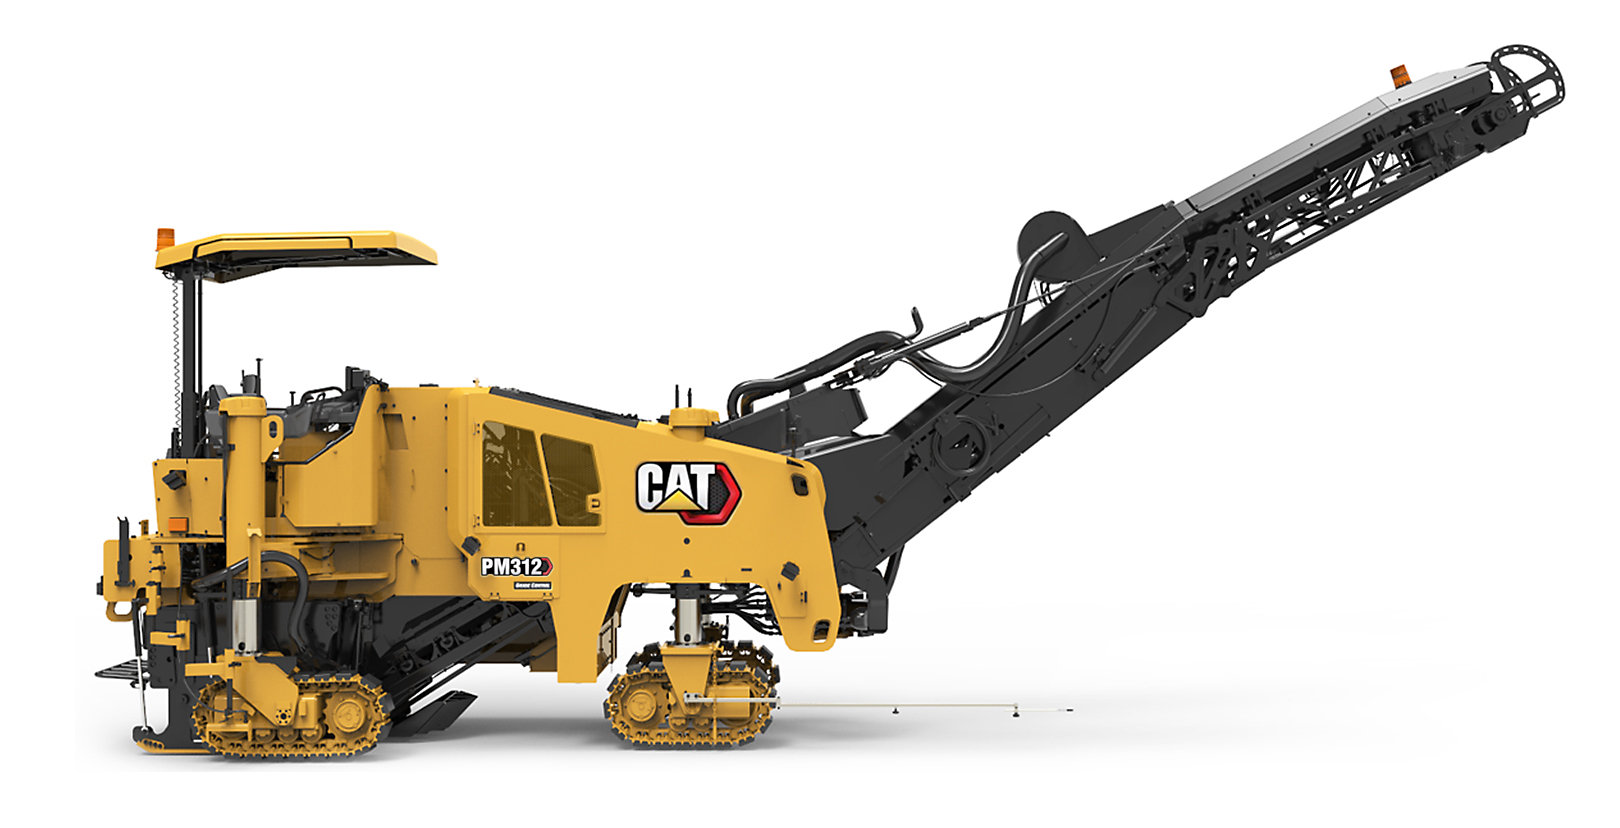 Caterpillar introduces updates to their PM310, PM312 and Pm313 Cold Planers